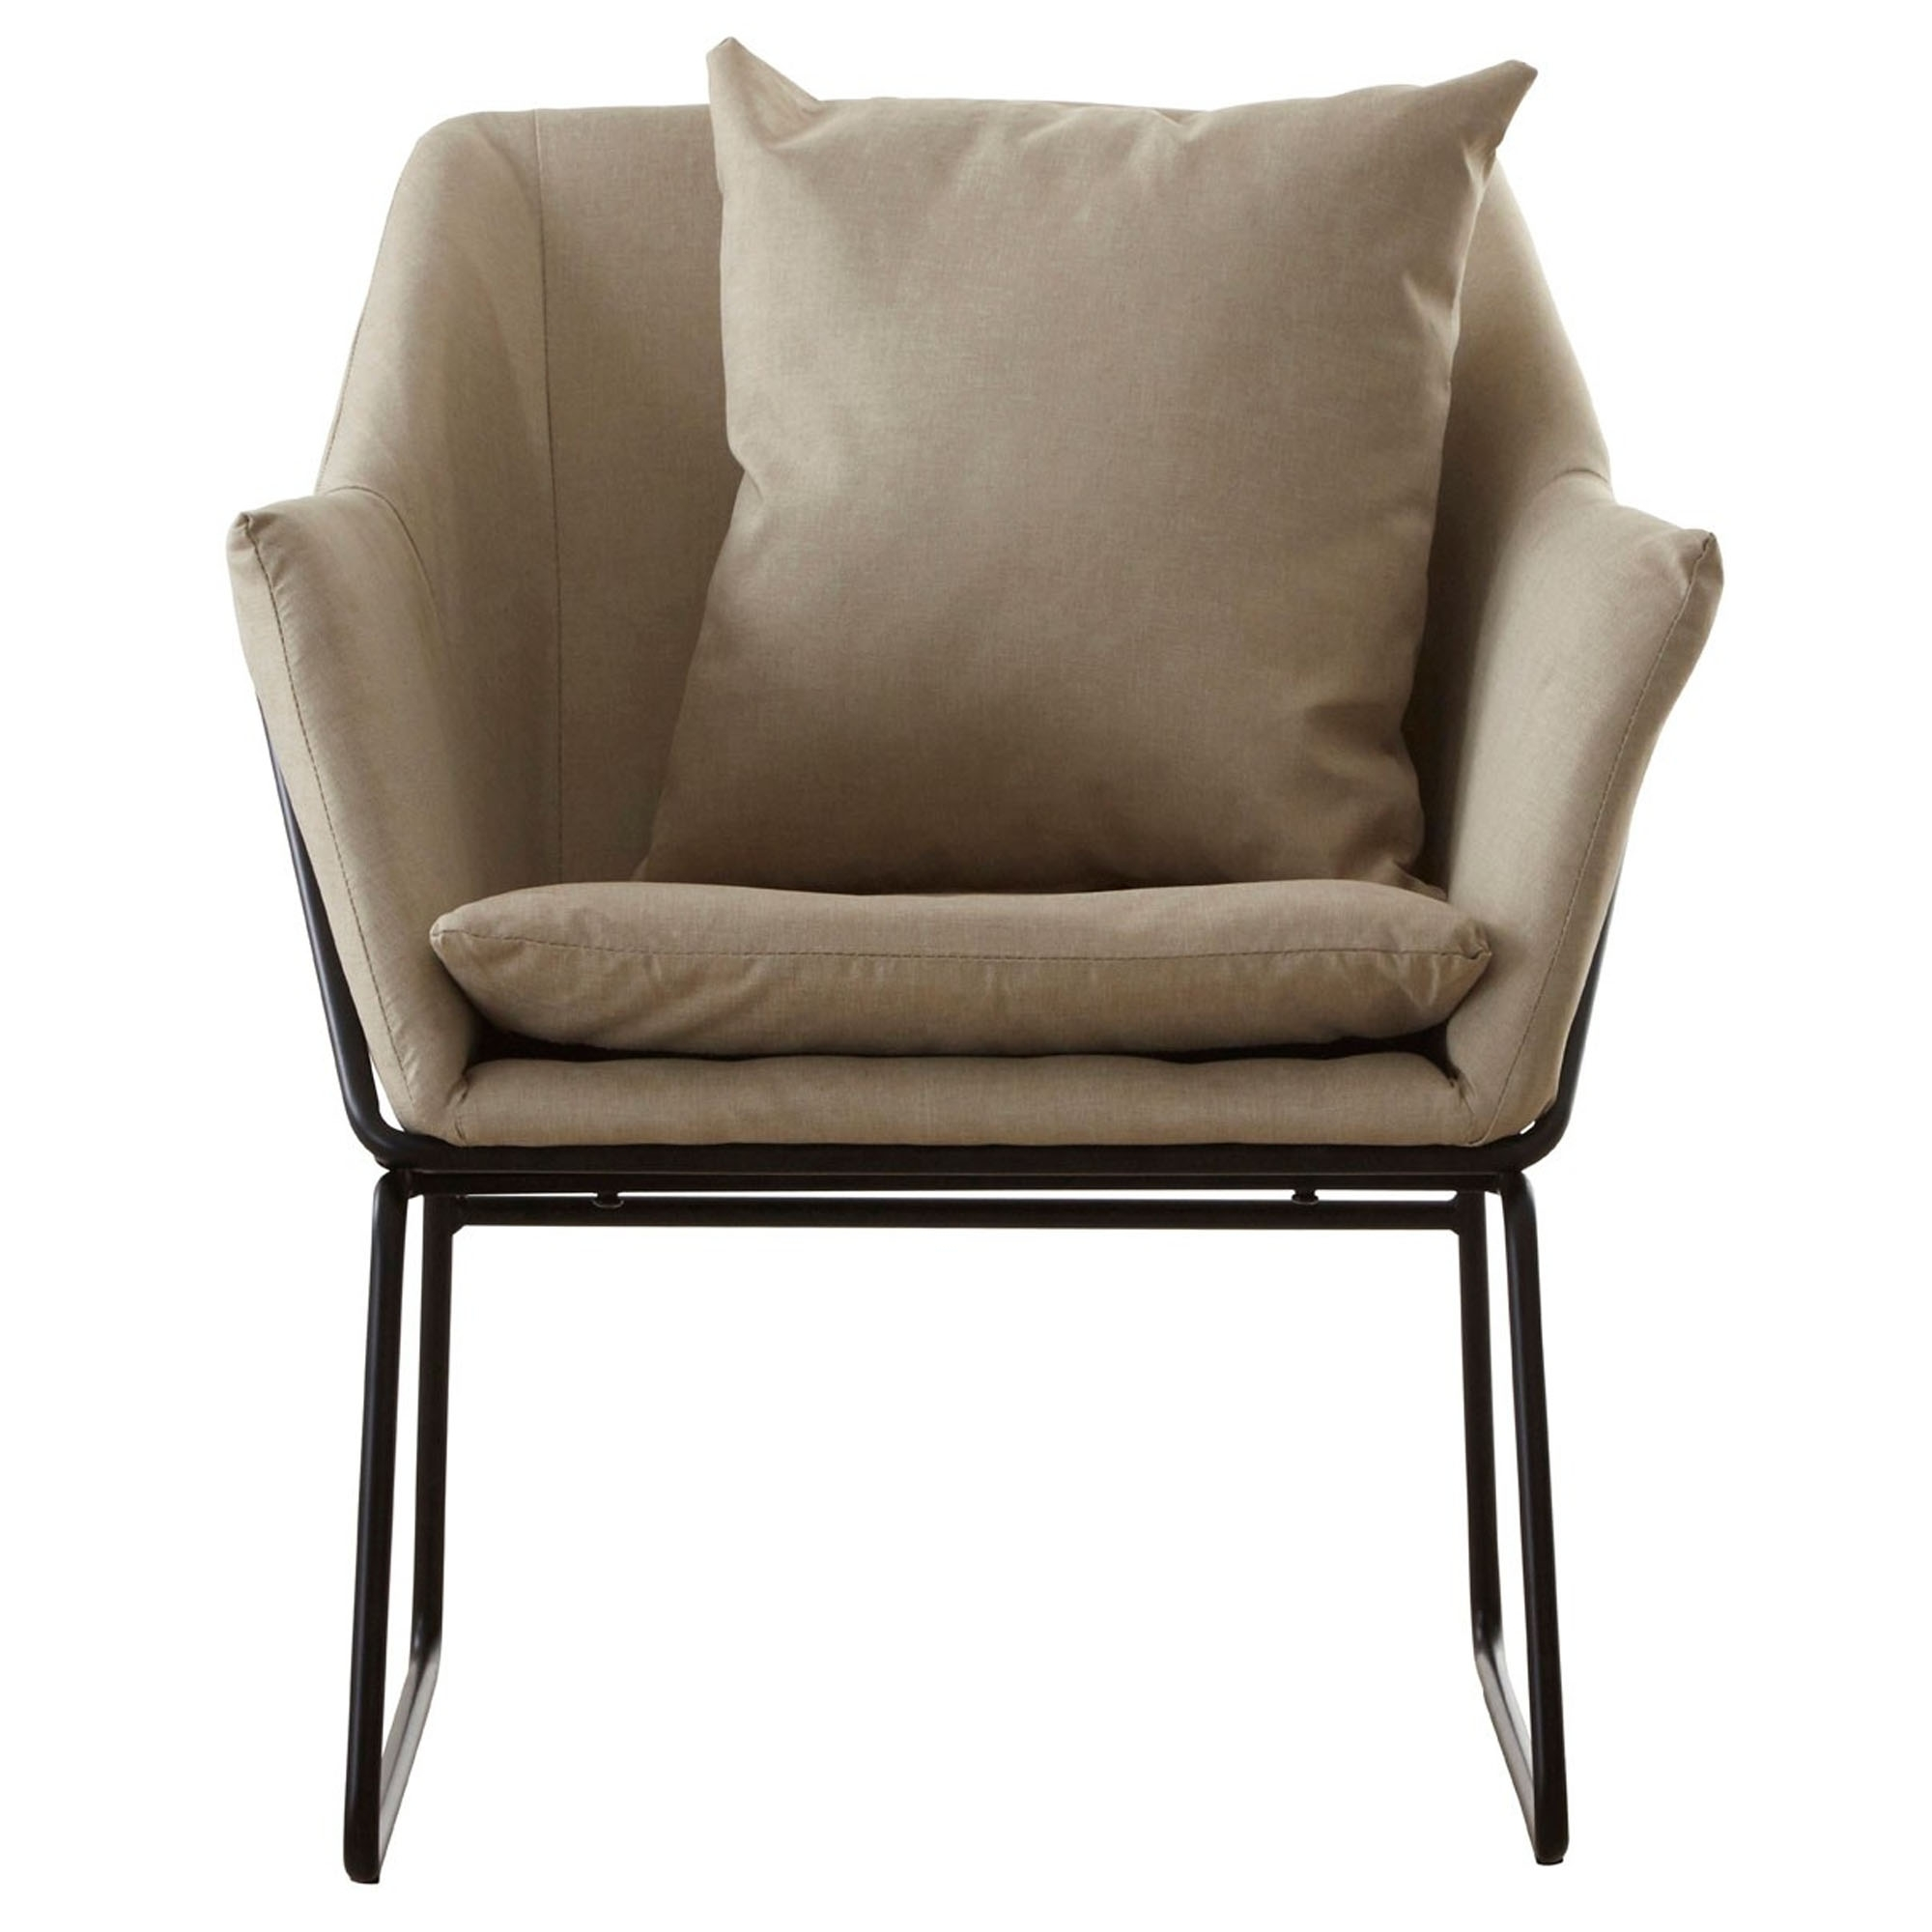 Cool Stockholm Stone Fabric Chair Creativecarmelina Interior Chair Design Creativecarmelinacom